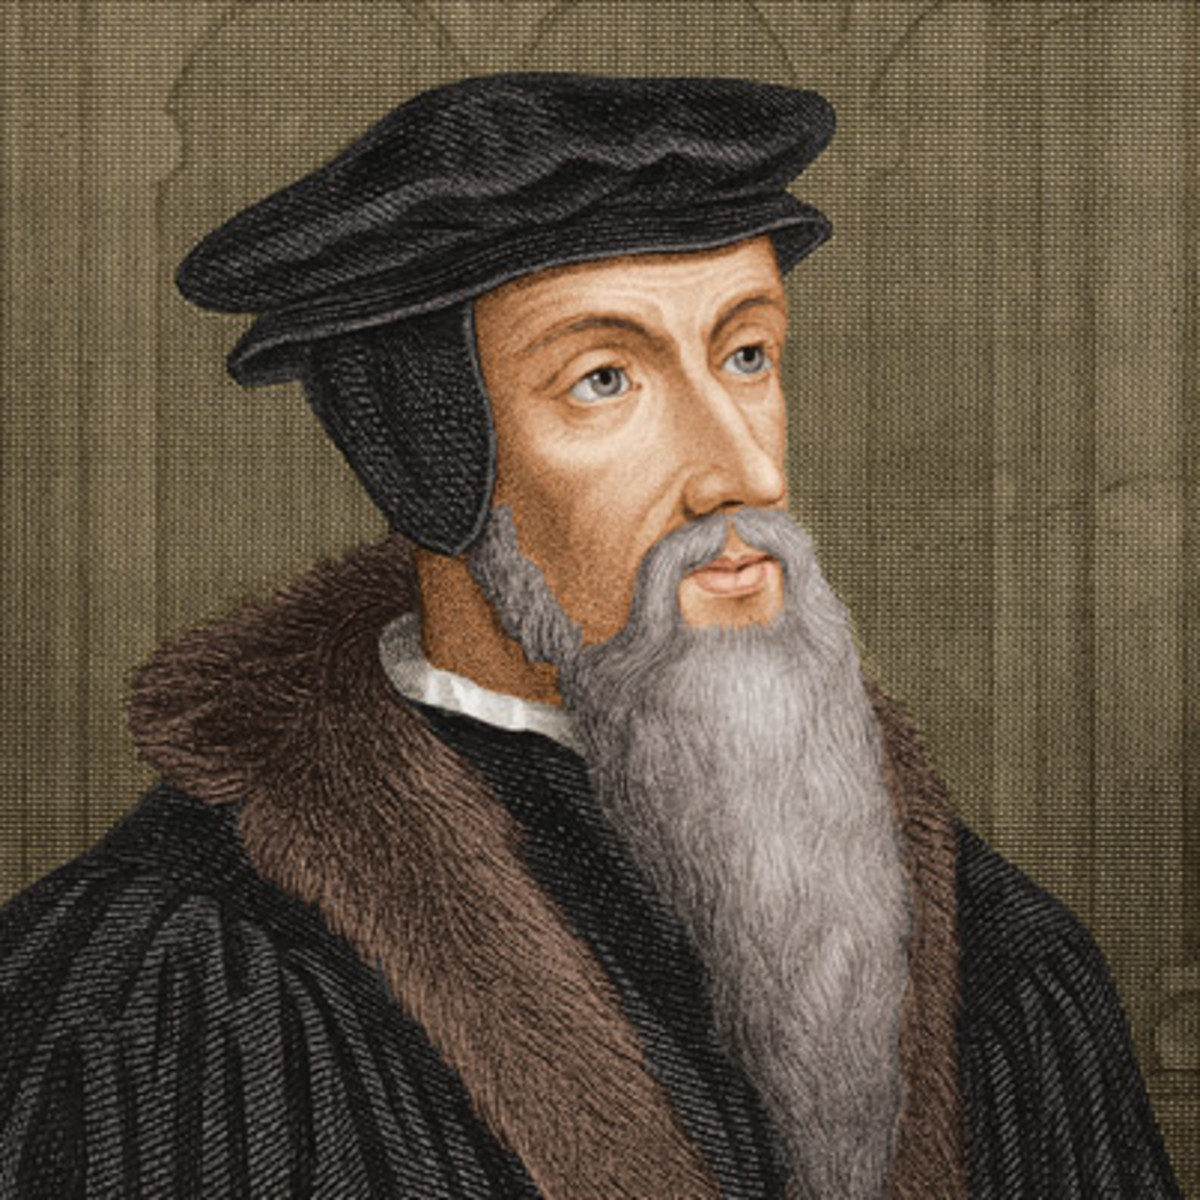 Reformation 500: Calvin on sanctification